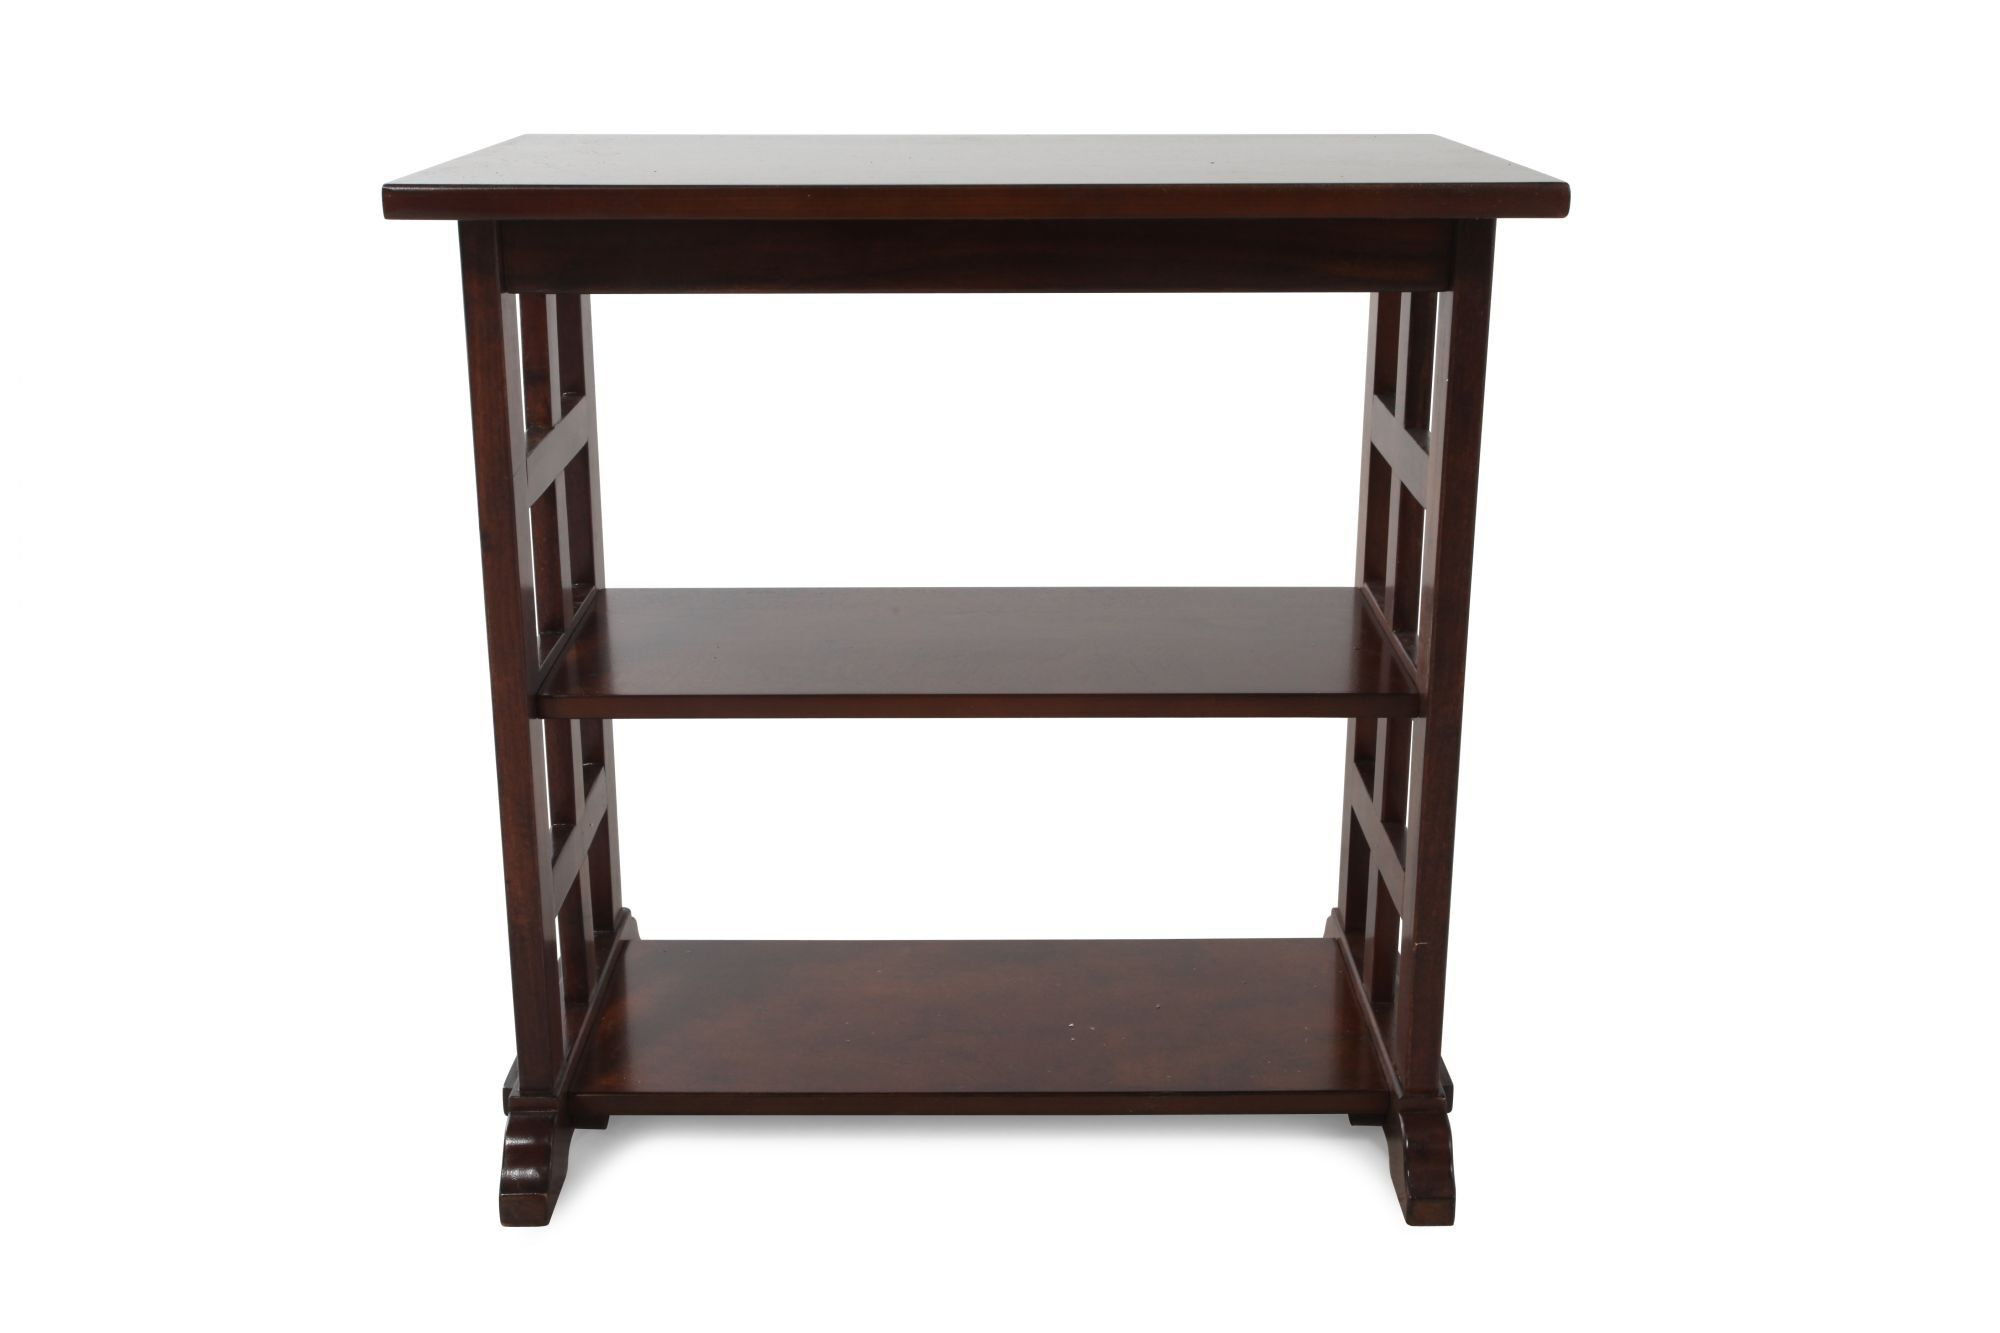 Modern Chairside Table Rectangular Contemporary Chairside Table In Cherry Brown